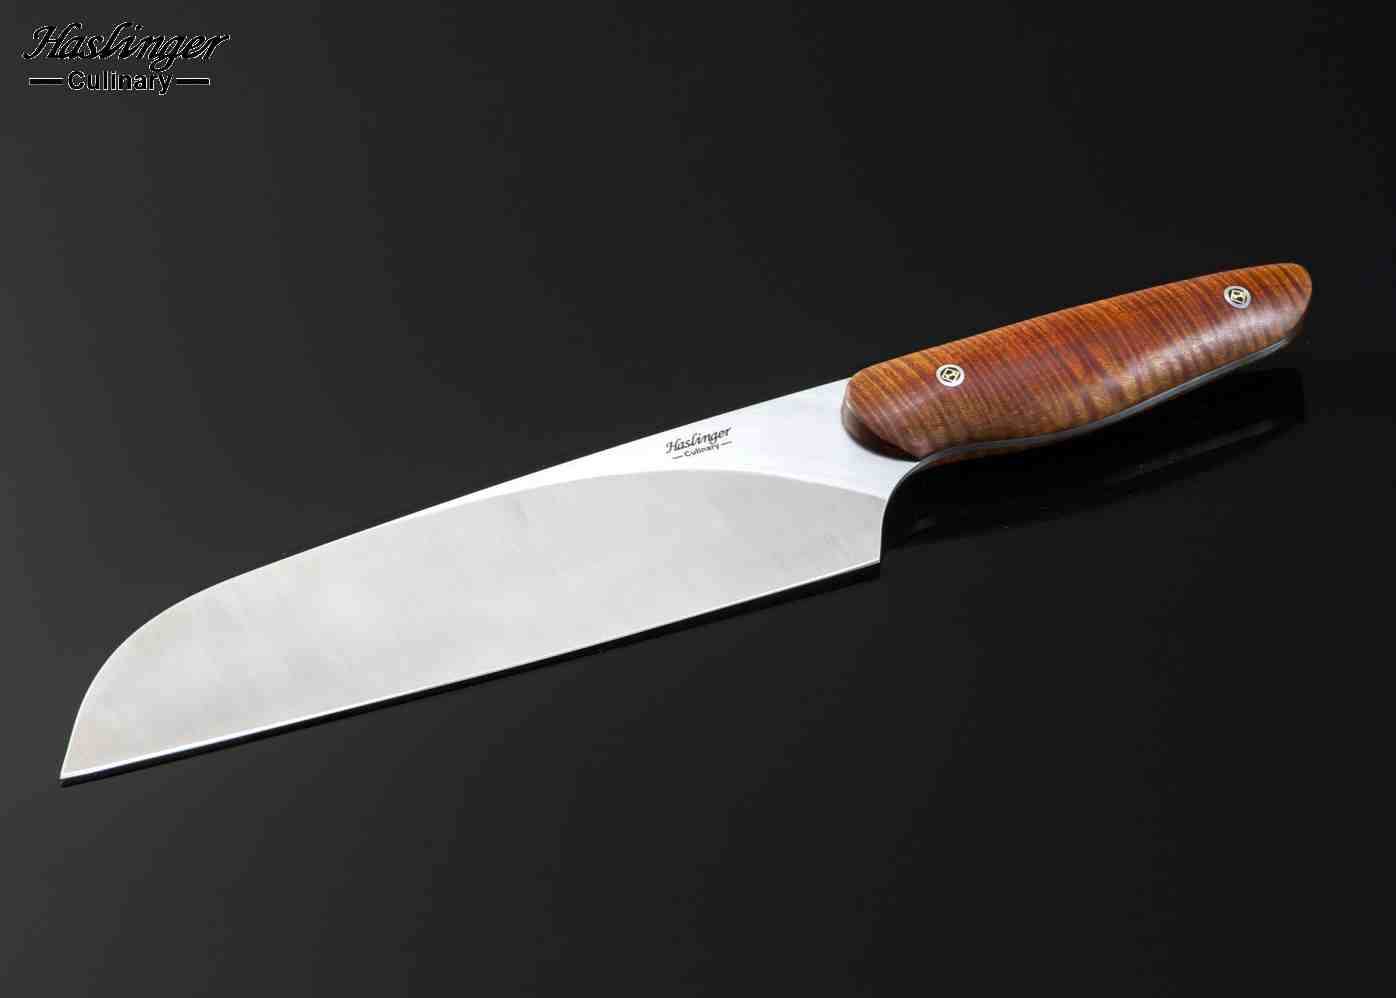 evolution chef knife with tiger striped maple handle 200mm haslinger culinary knives. Black Bedroom Furniture Sets. Home Design Ideas